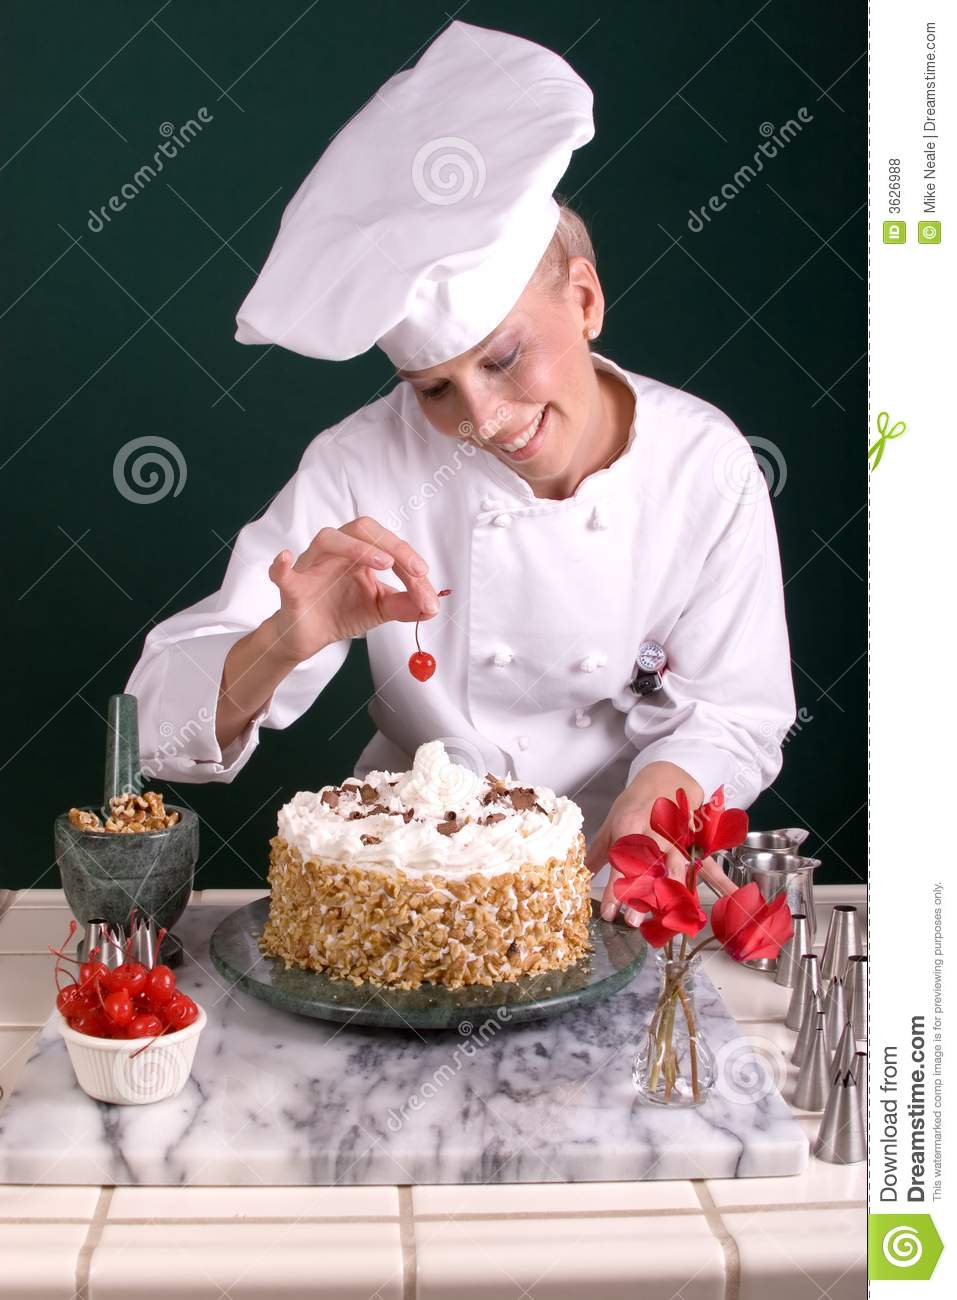 Pastry Chef Spotting Cherry Stock Photo Image Of Dessert